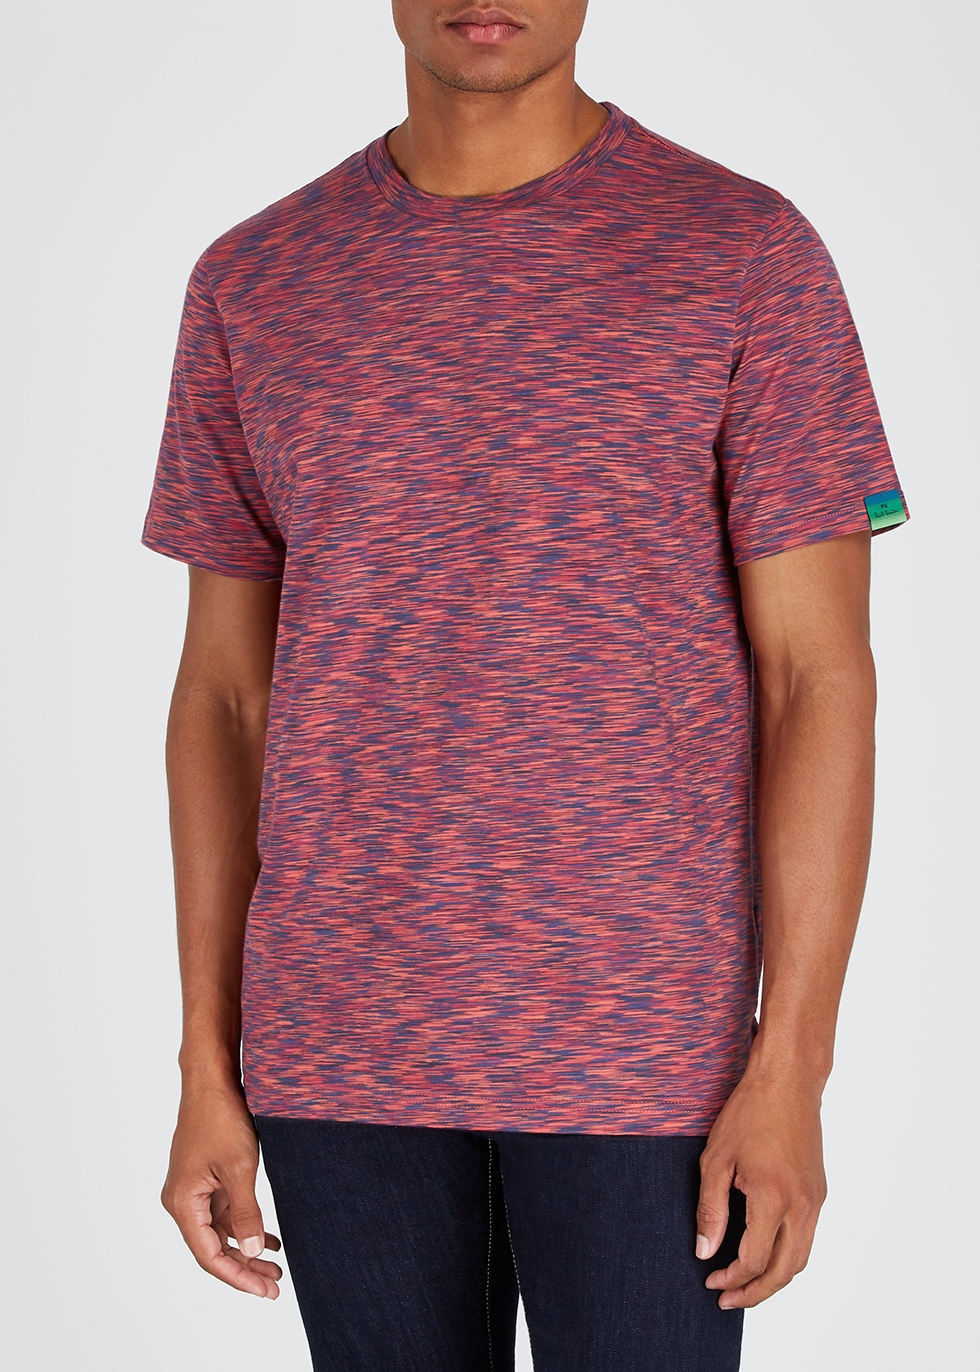 Red space-dye cotton T-shirt - PS by Paul Smith